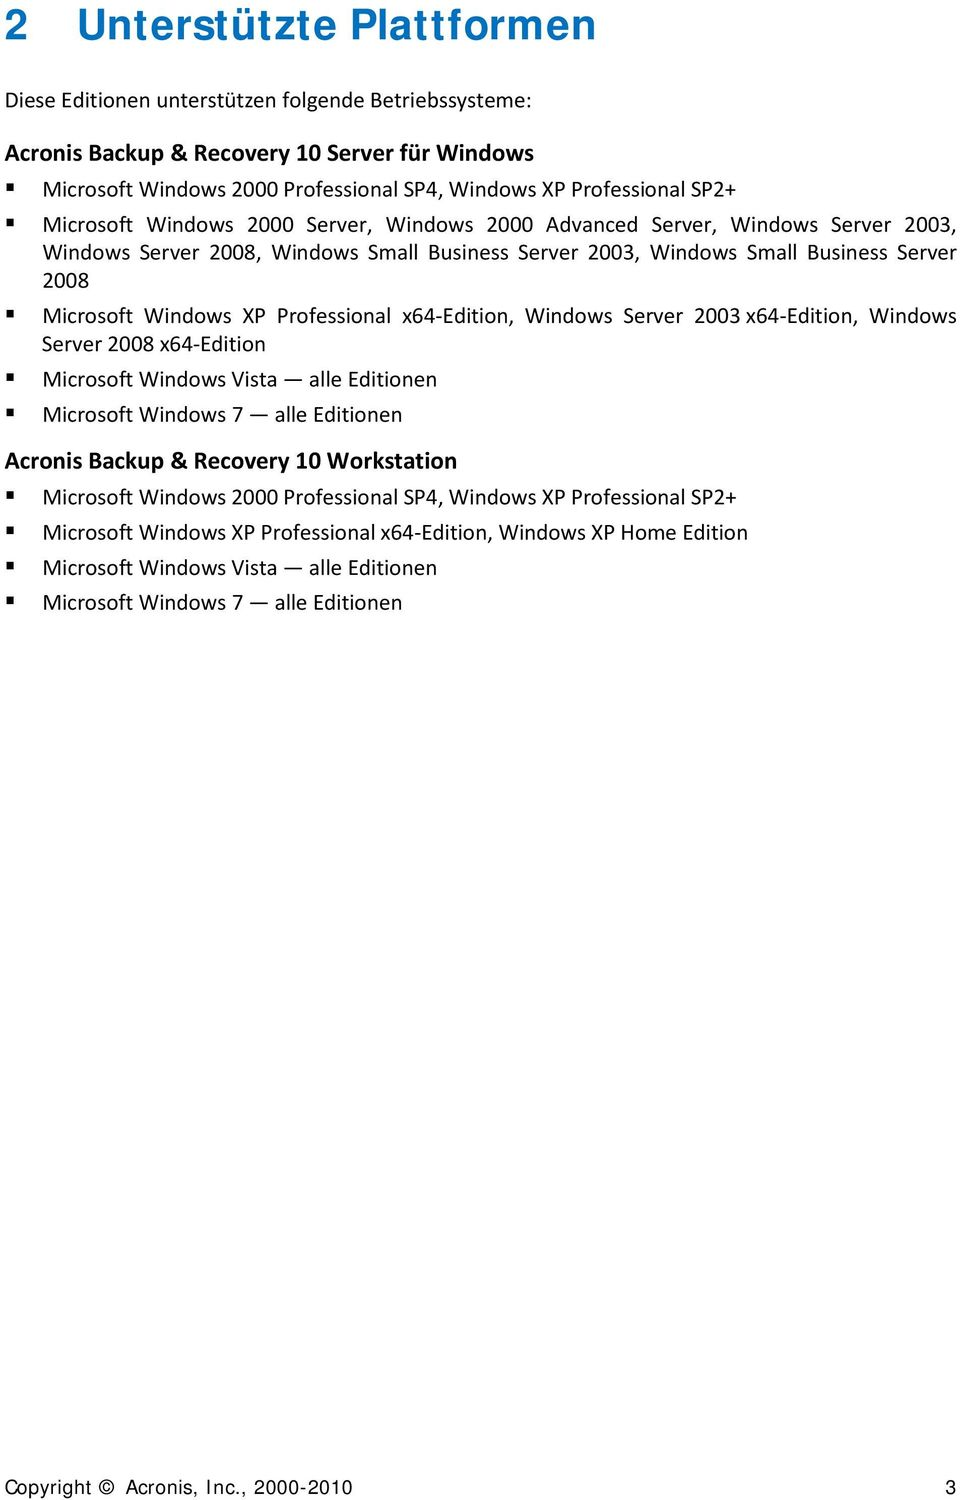 Professional x64-edition, Windows Server 2003 x64-edition, Windows Server 2008 x64-edition Microsoft Windows Vista alle Editionen Microsoft Windows 7 alle Editionen Acronis Backup & Recovery 10